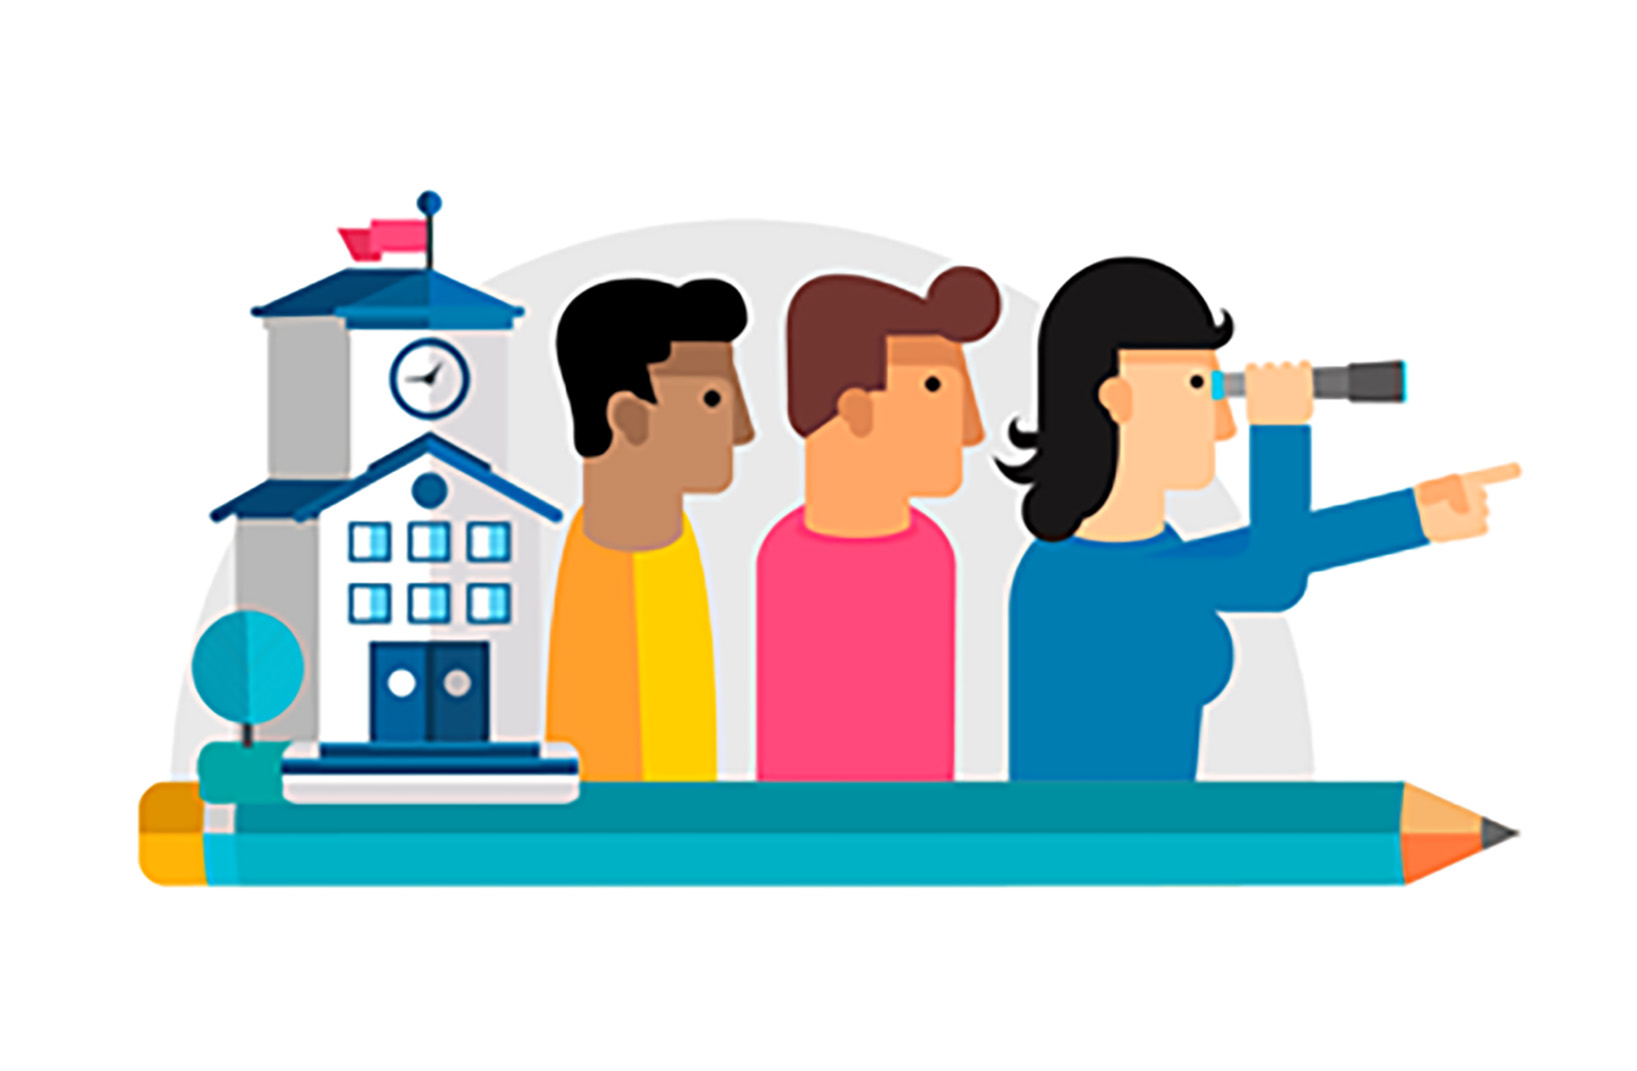 Teaching service commission clipart svg free library SELFIE Forum: schools and policy makers to discuss digital ... svg free library